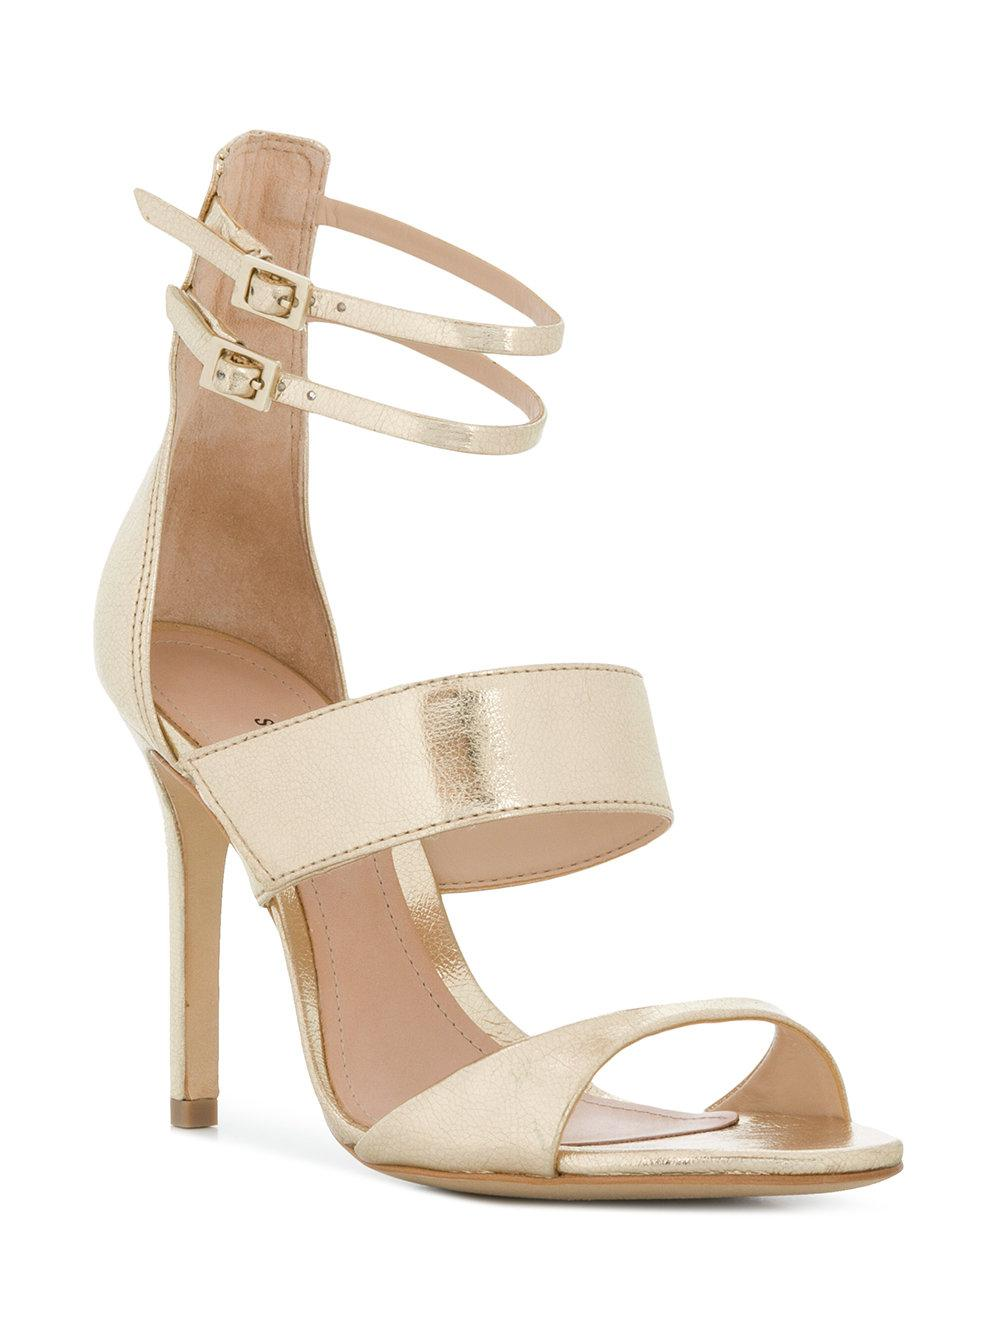 Outlet Sale Online Cheap Price Cost double ankle strap sandals - Metallic Schutz Online Shop Discount Fake Best Cheap Price oX6niW